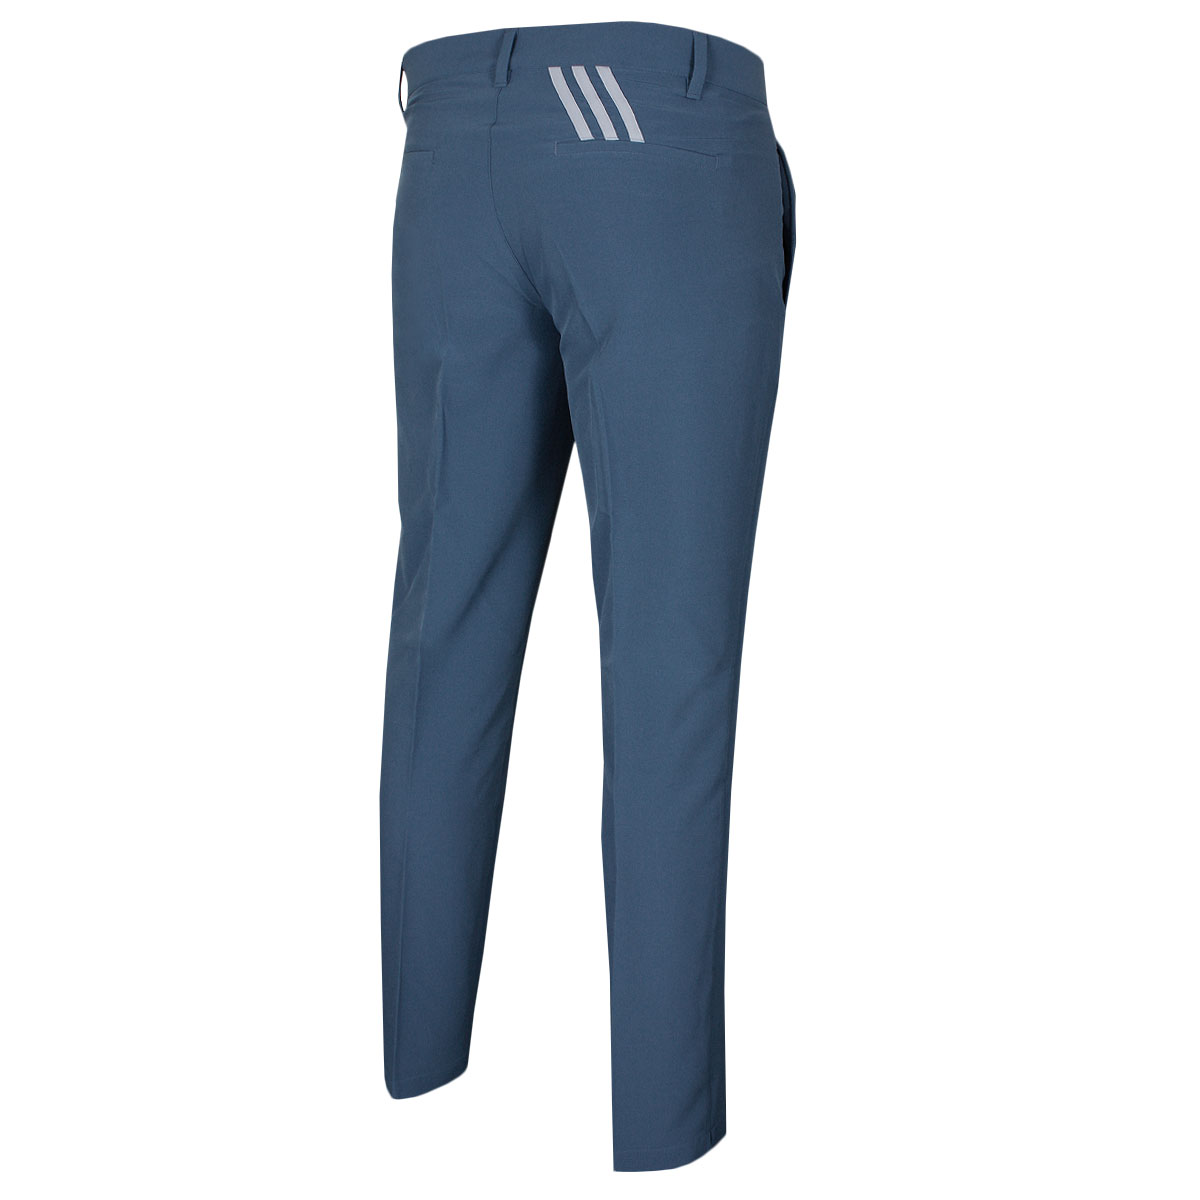 adidas-Golf-Mens-Ultimate-3-Stripes-Stretch-Pant-Trousers-44-OFF-RRP Indexbild 45